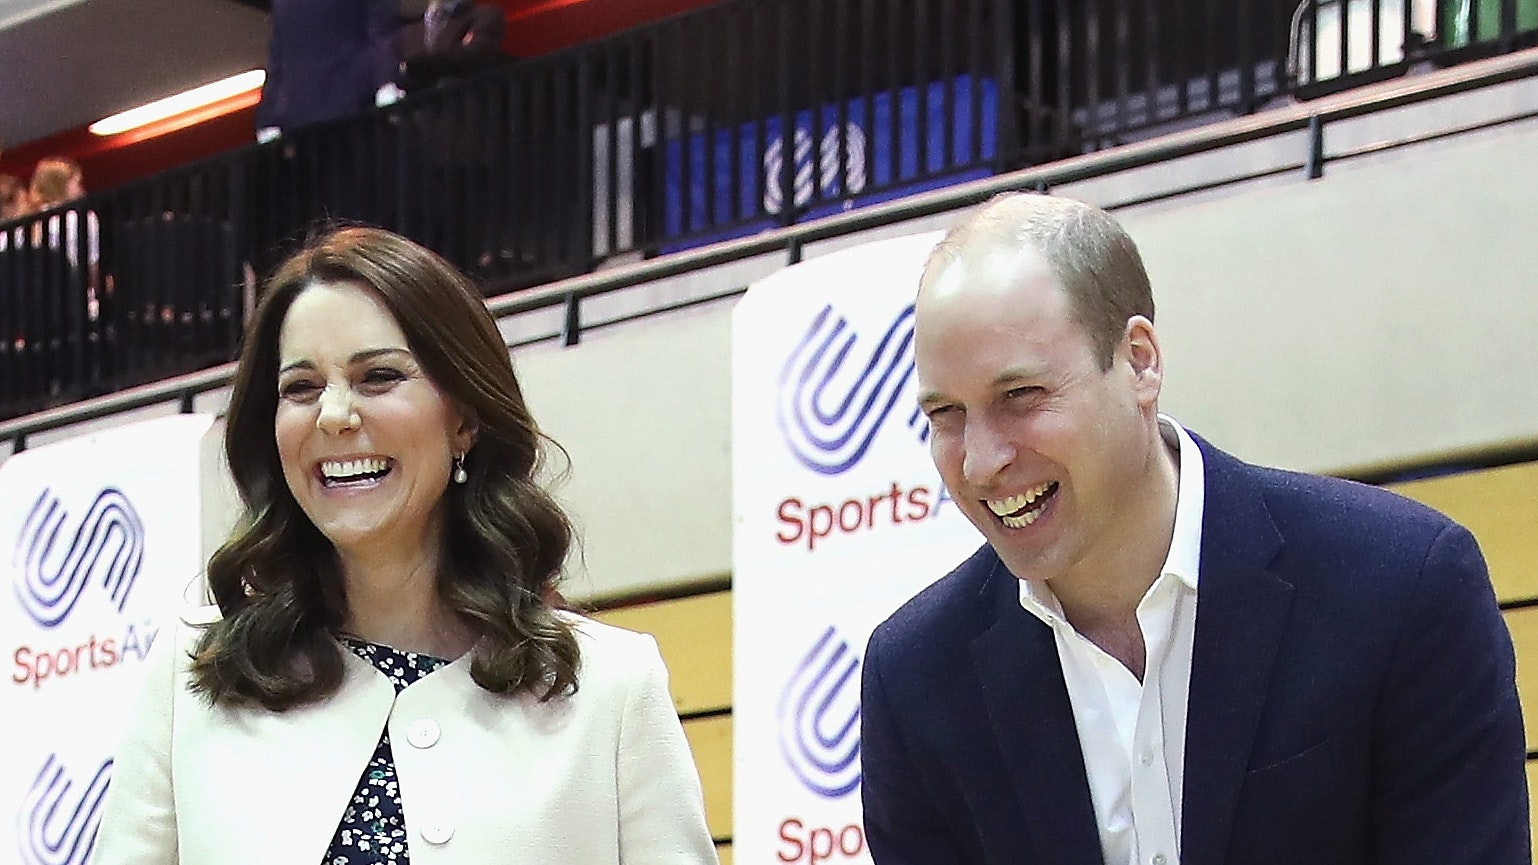 Royal birth: It's a boy for William and Kate